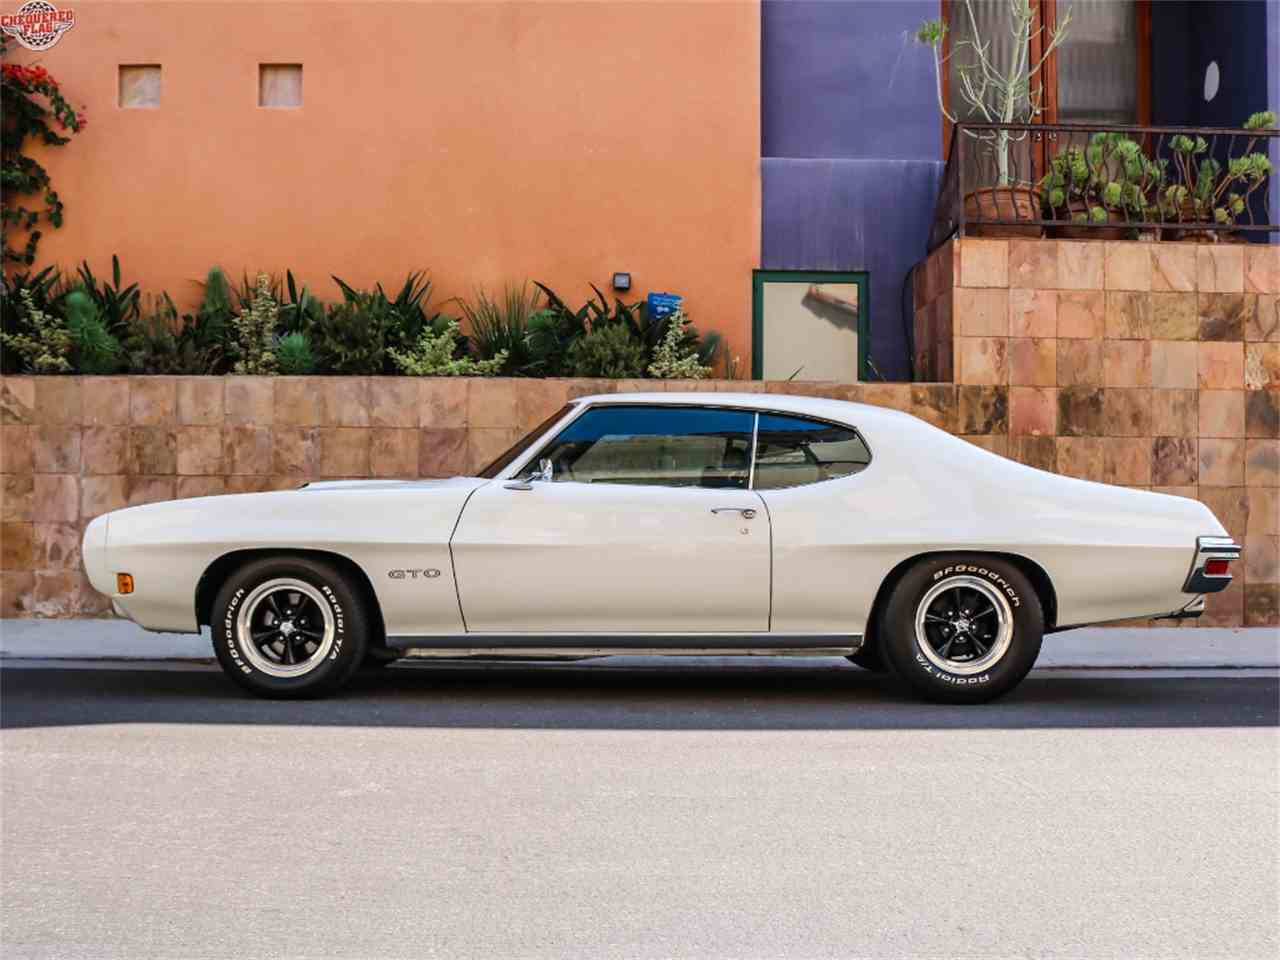 Large Picture of Classic '70 GTO located in Marina Del Rey California - $38,500.00 - LTS2